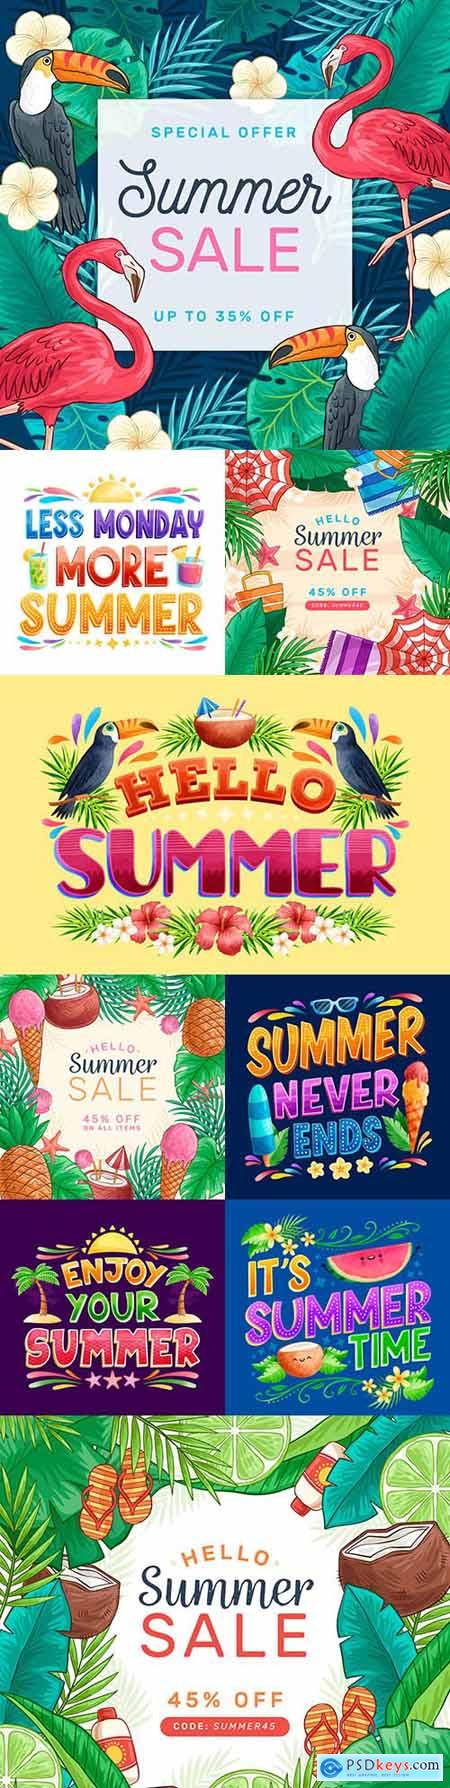 Summer sale painted design with thematic inscriptions